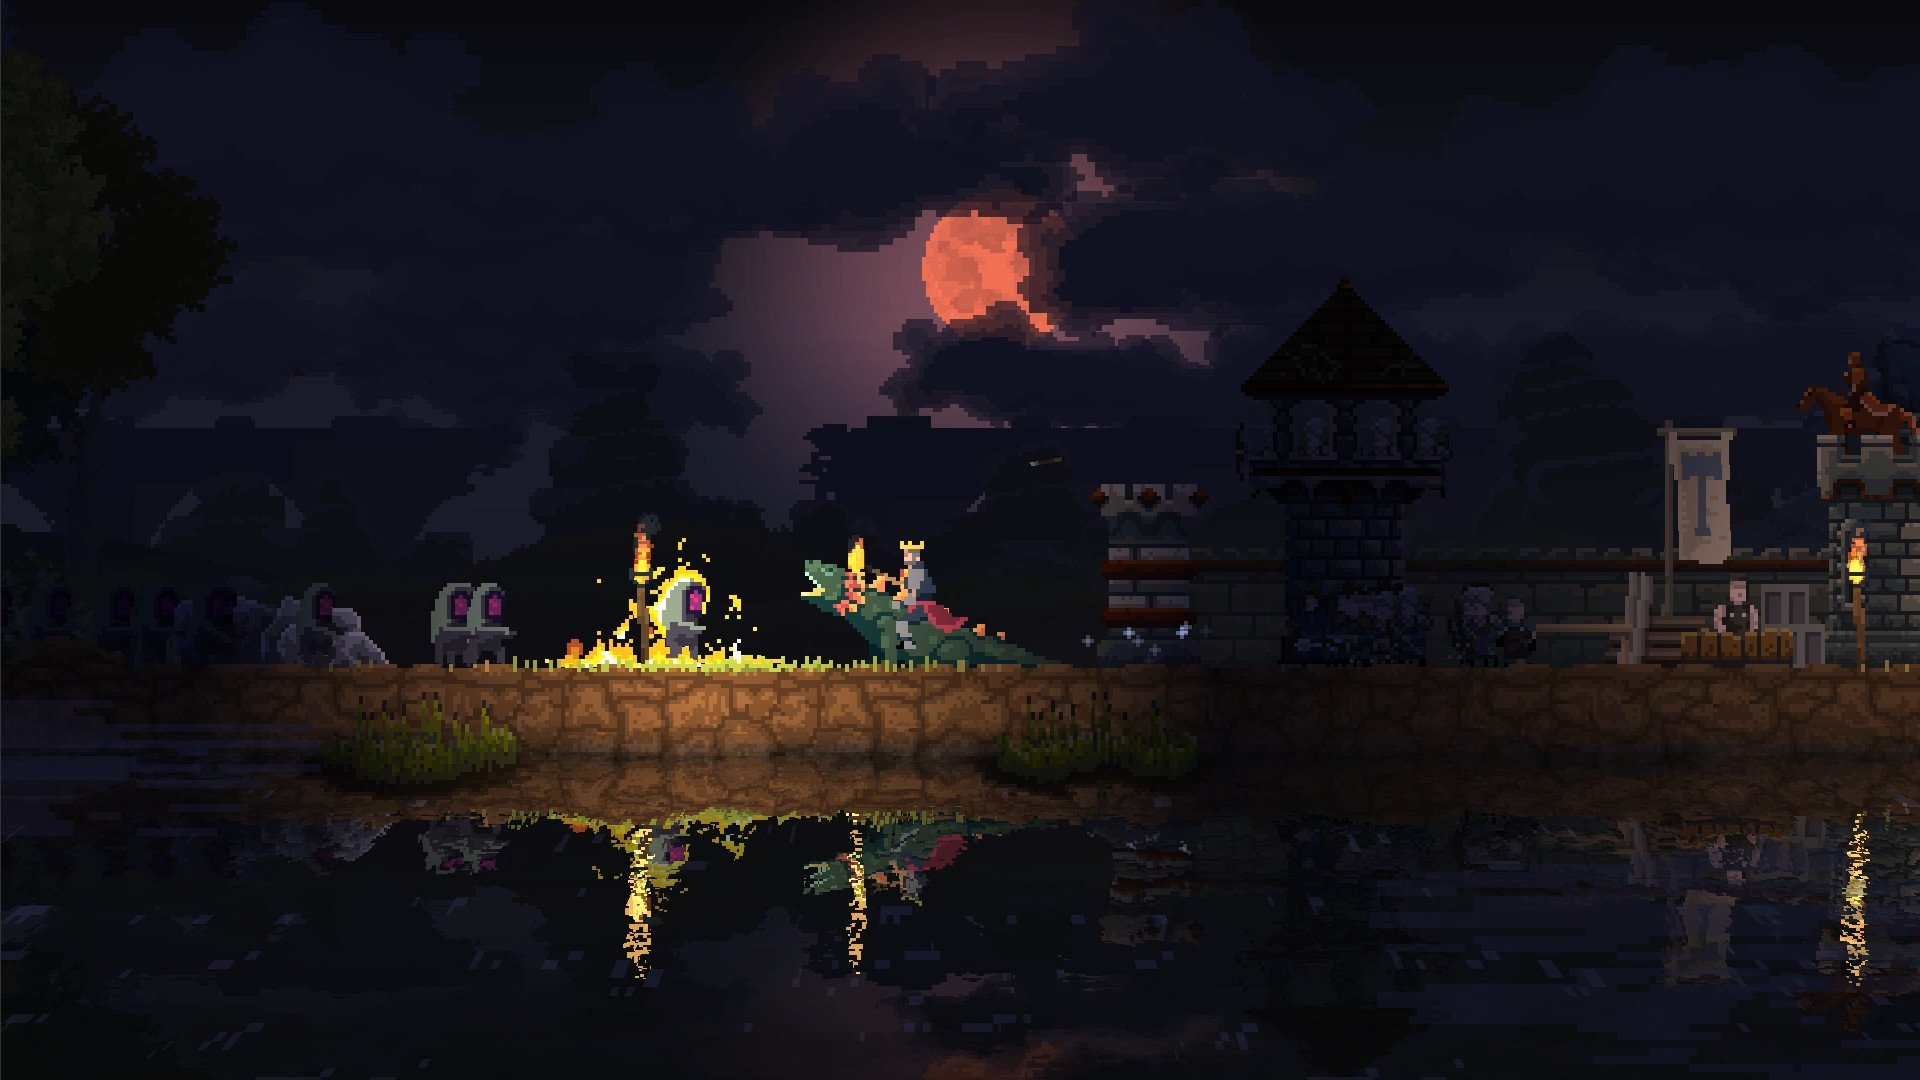 The moon is pixellated in real life, too.